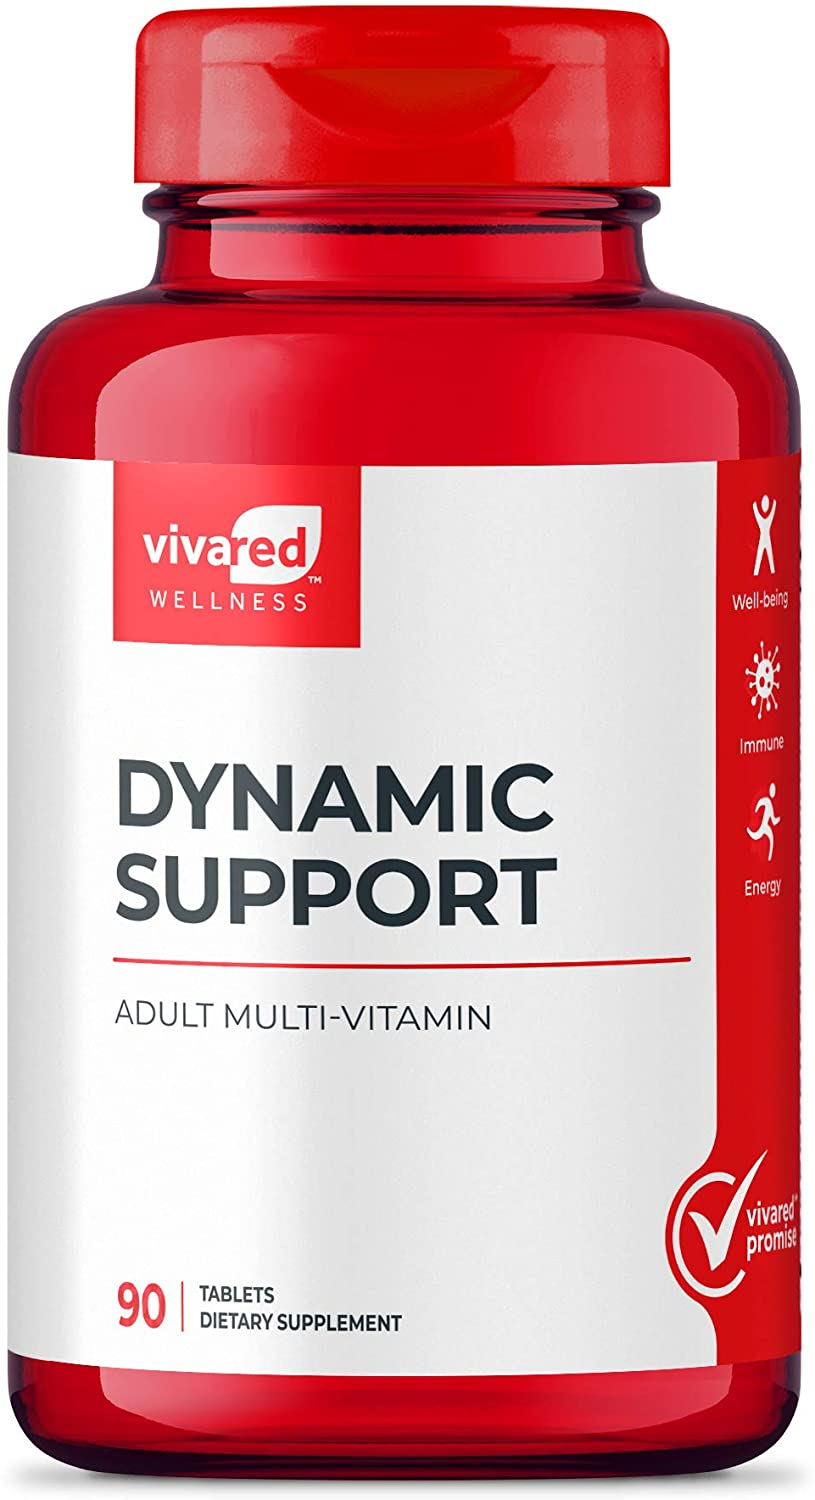 VivaRed Dynamic Support, Adult Multi-Vitamin, 42 Fruit and Vegetable Blend, 90 Count, Made in USA